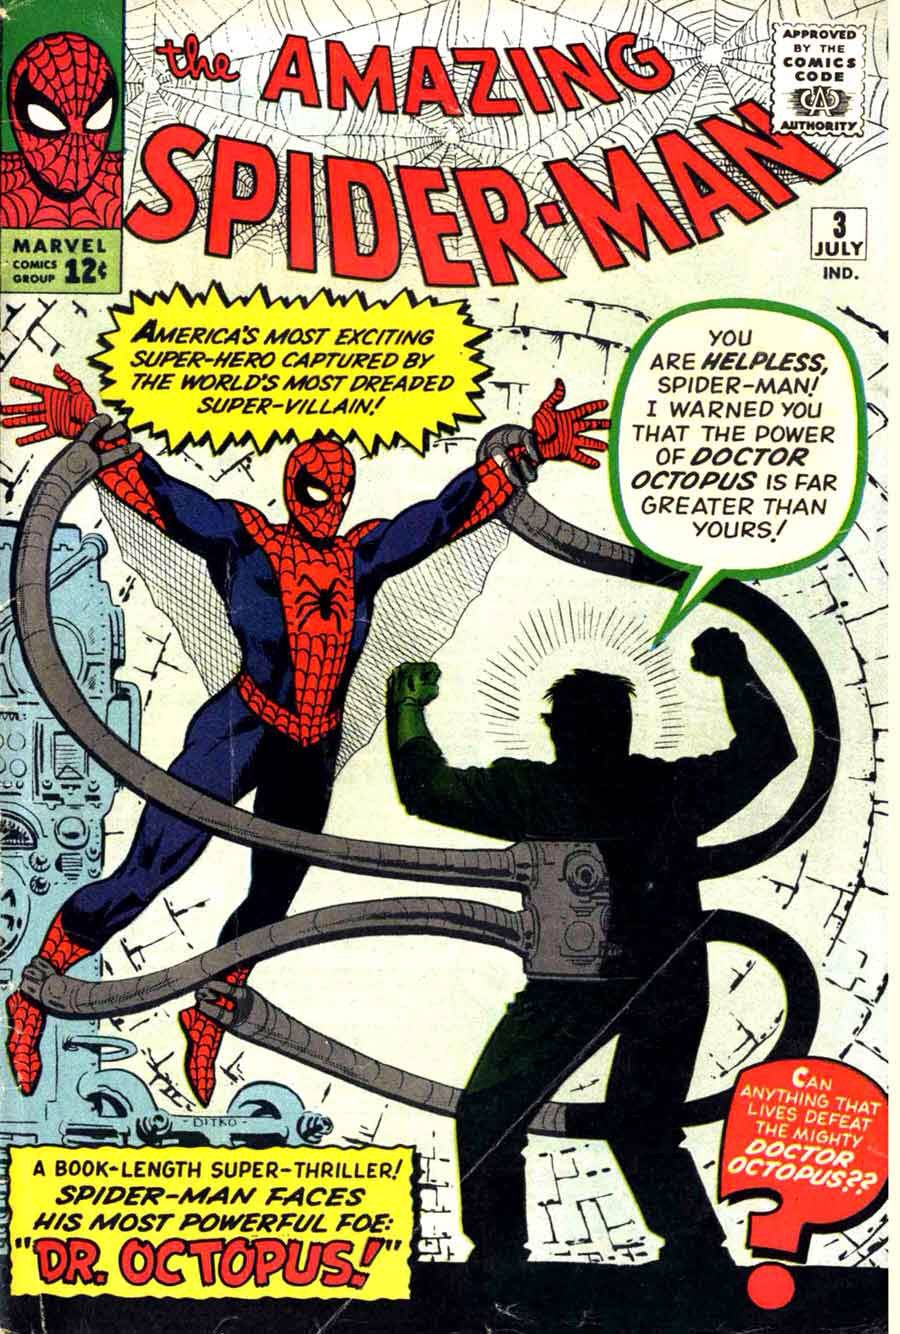 The Amazing Spider-Man #3 July 1963 Marvel Comics